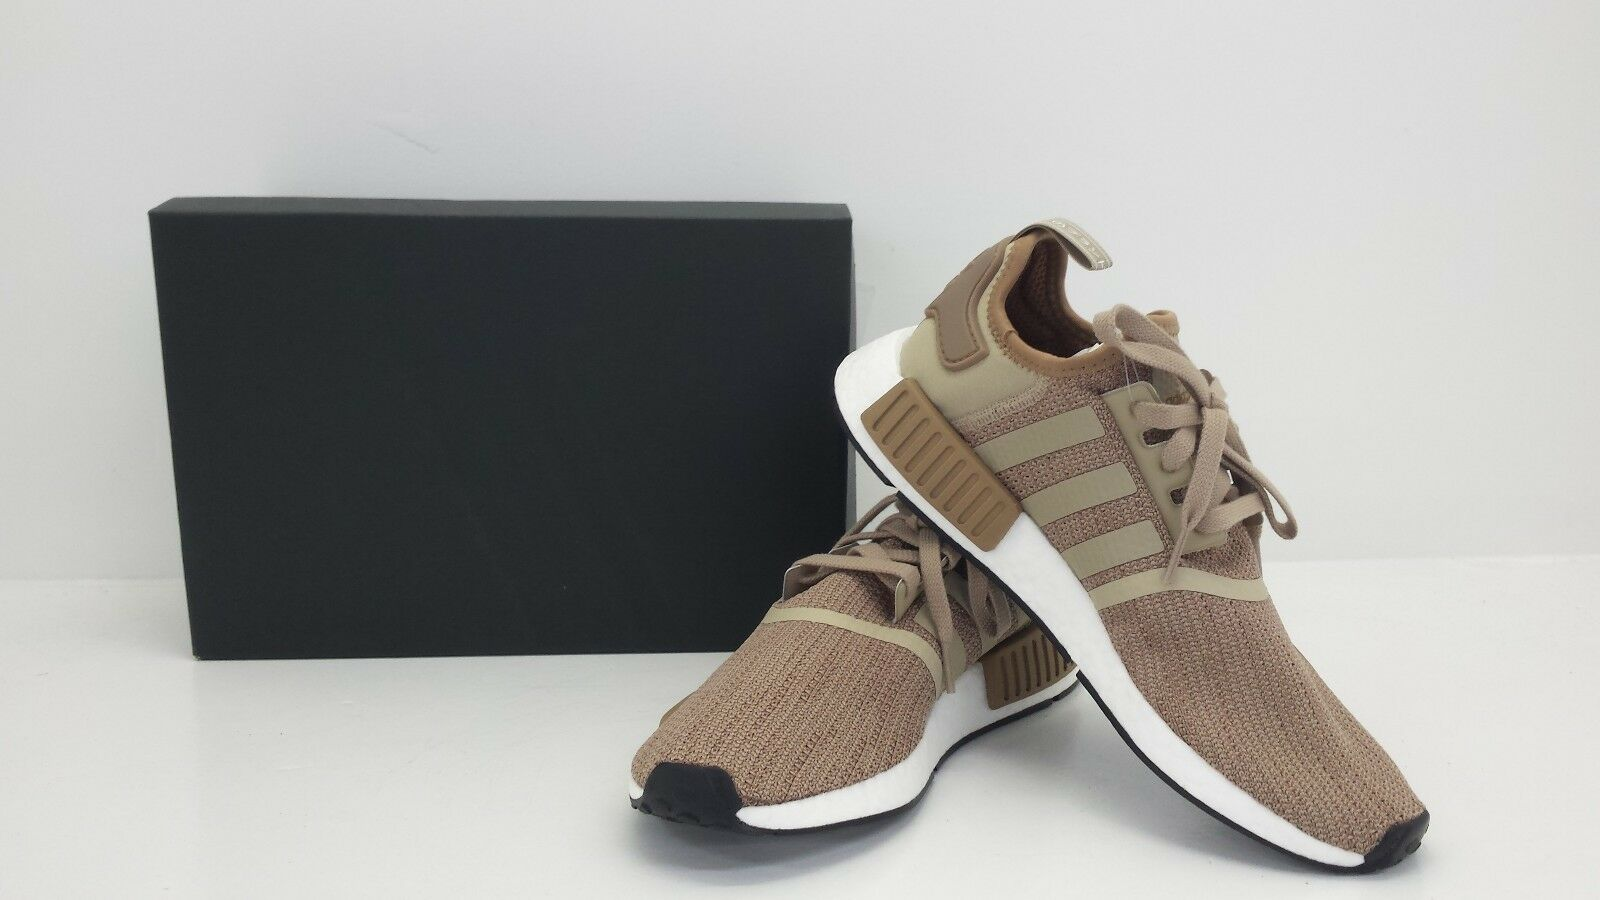 Adidas Originals NMD_R1 Brown/Raw Gold/Cardboard B79760 - BRAND NEW IN BOX